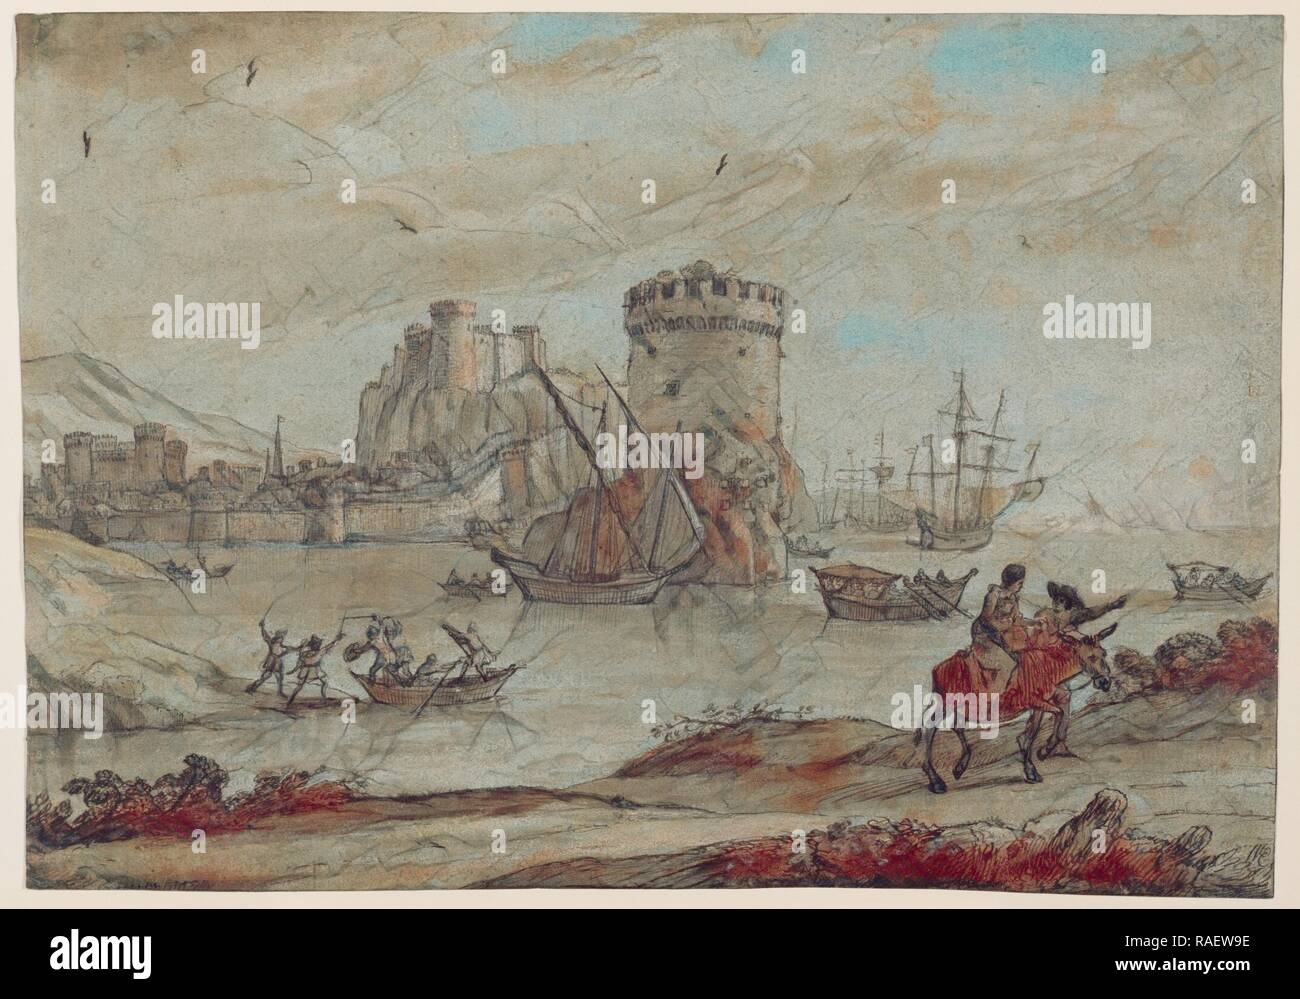 Figures in a Landscape before a Harbor, Claude Lorrain (Claude Gellée) (French, 1604 or 1605 ? - 1682), France, late reimagined - Stock Image